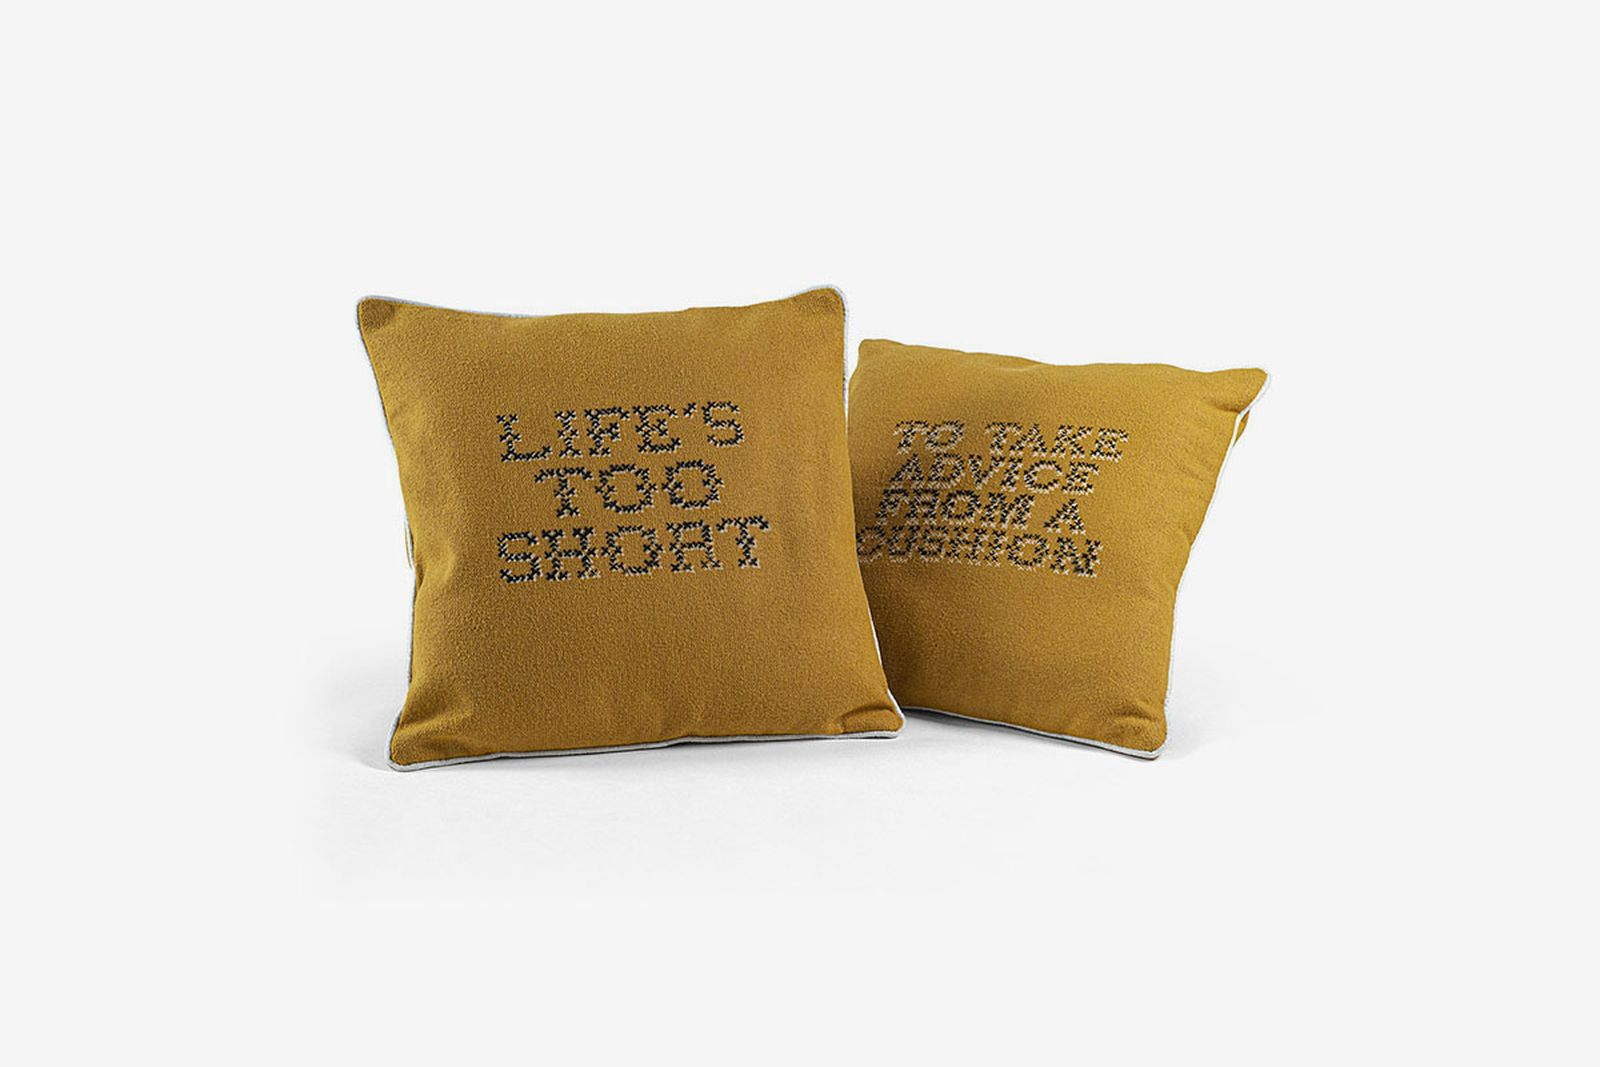 Banksy Gross Domestic Product cushions